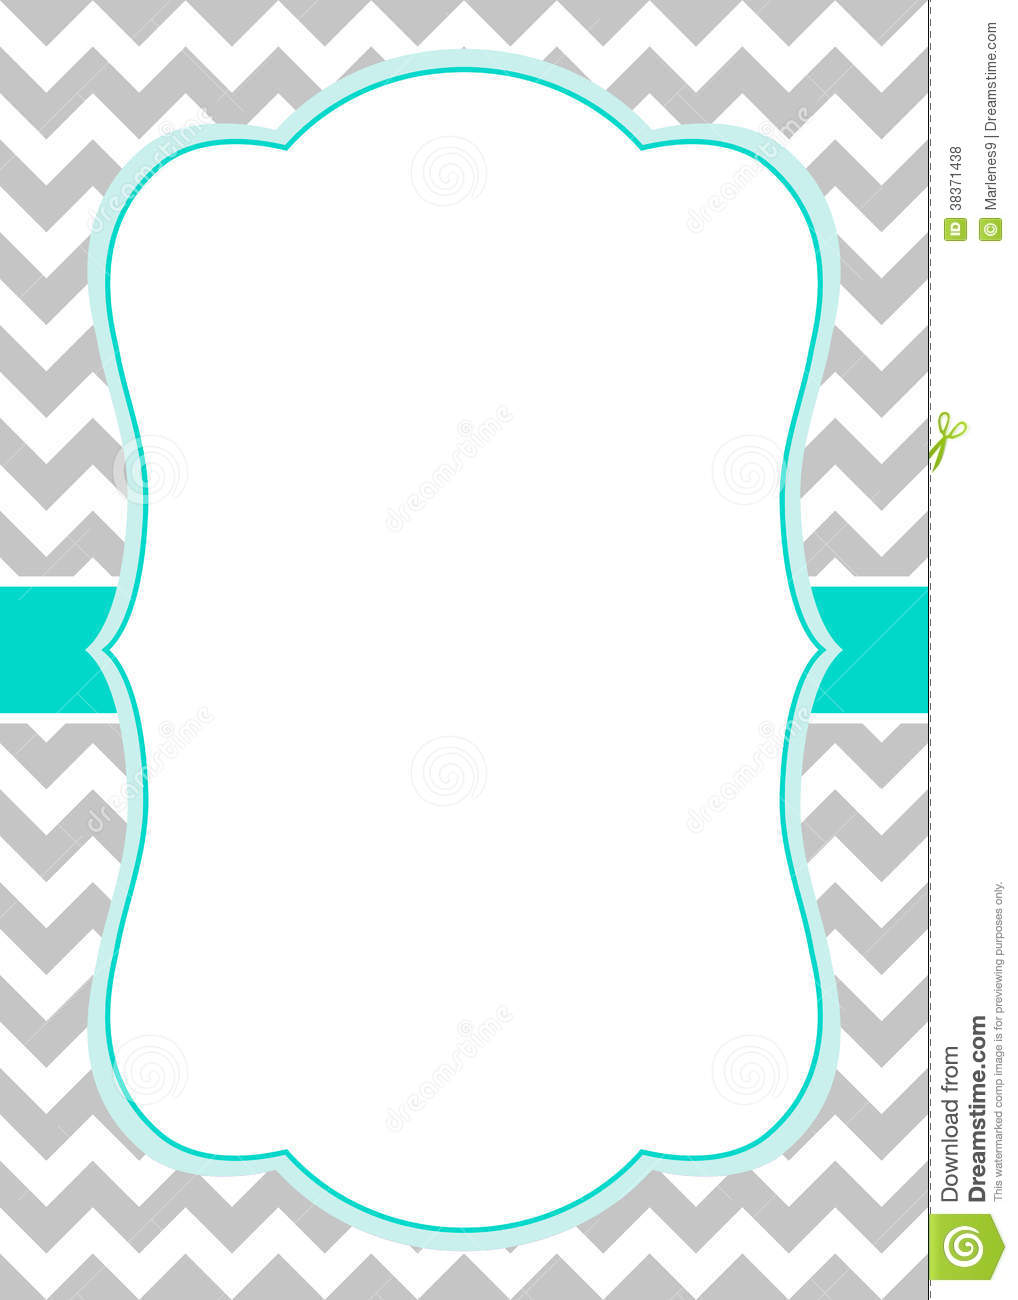 6 Images of Free Printable Chevron Border Template